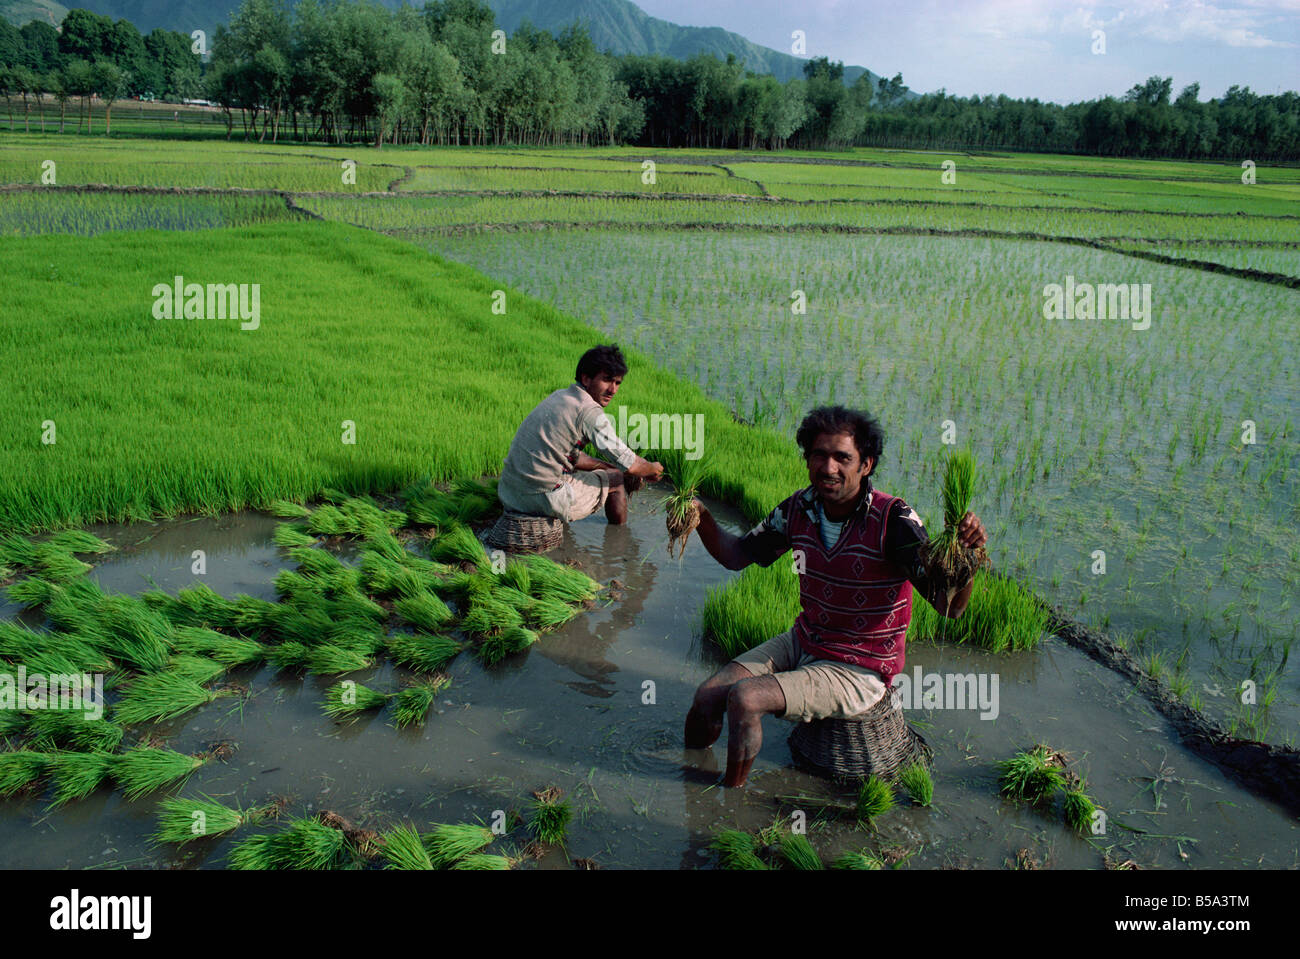 Planting rice paddy fields Kashmir India Asia - Stock Image